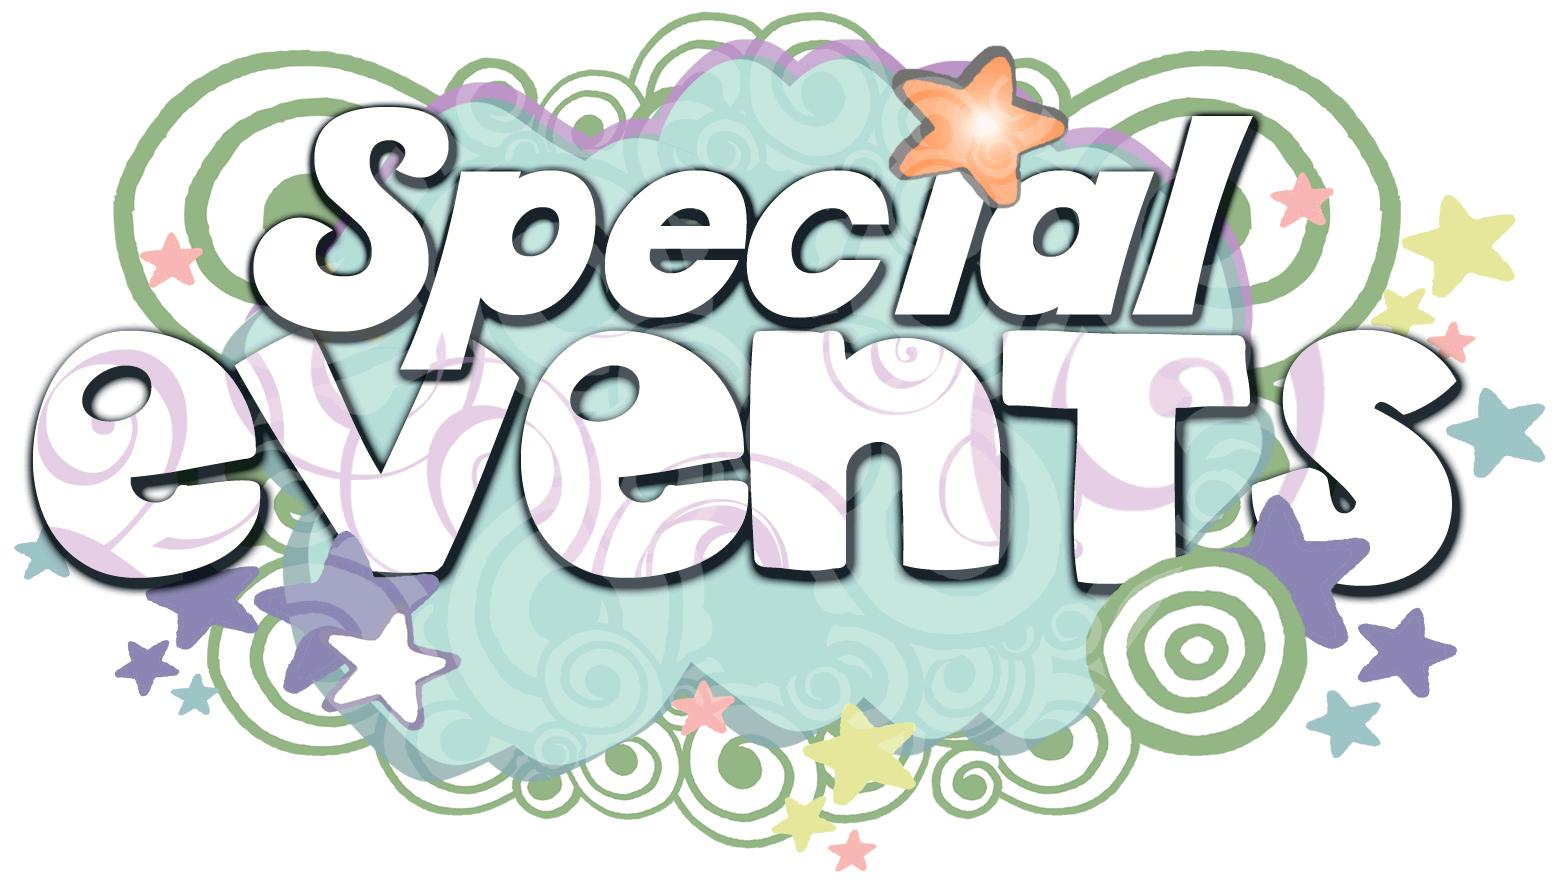 Free events cliparts download. Community clipart community event